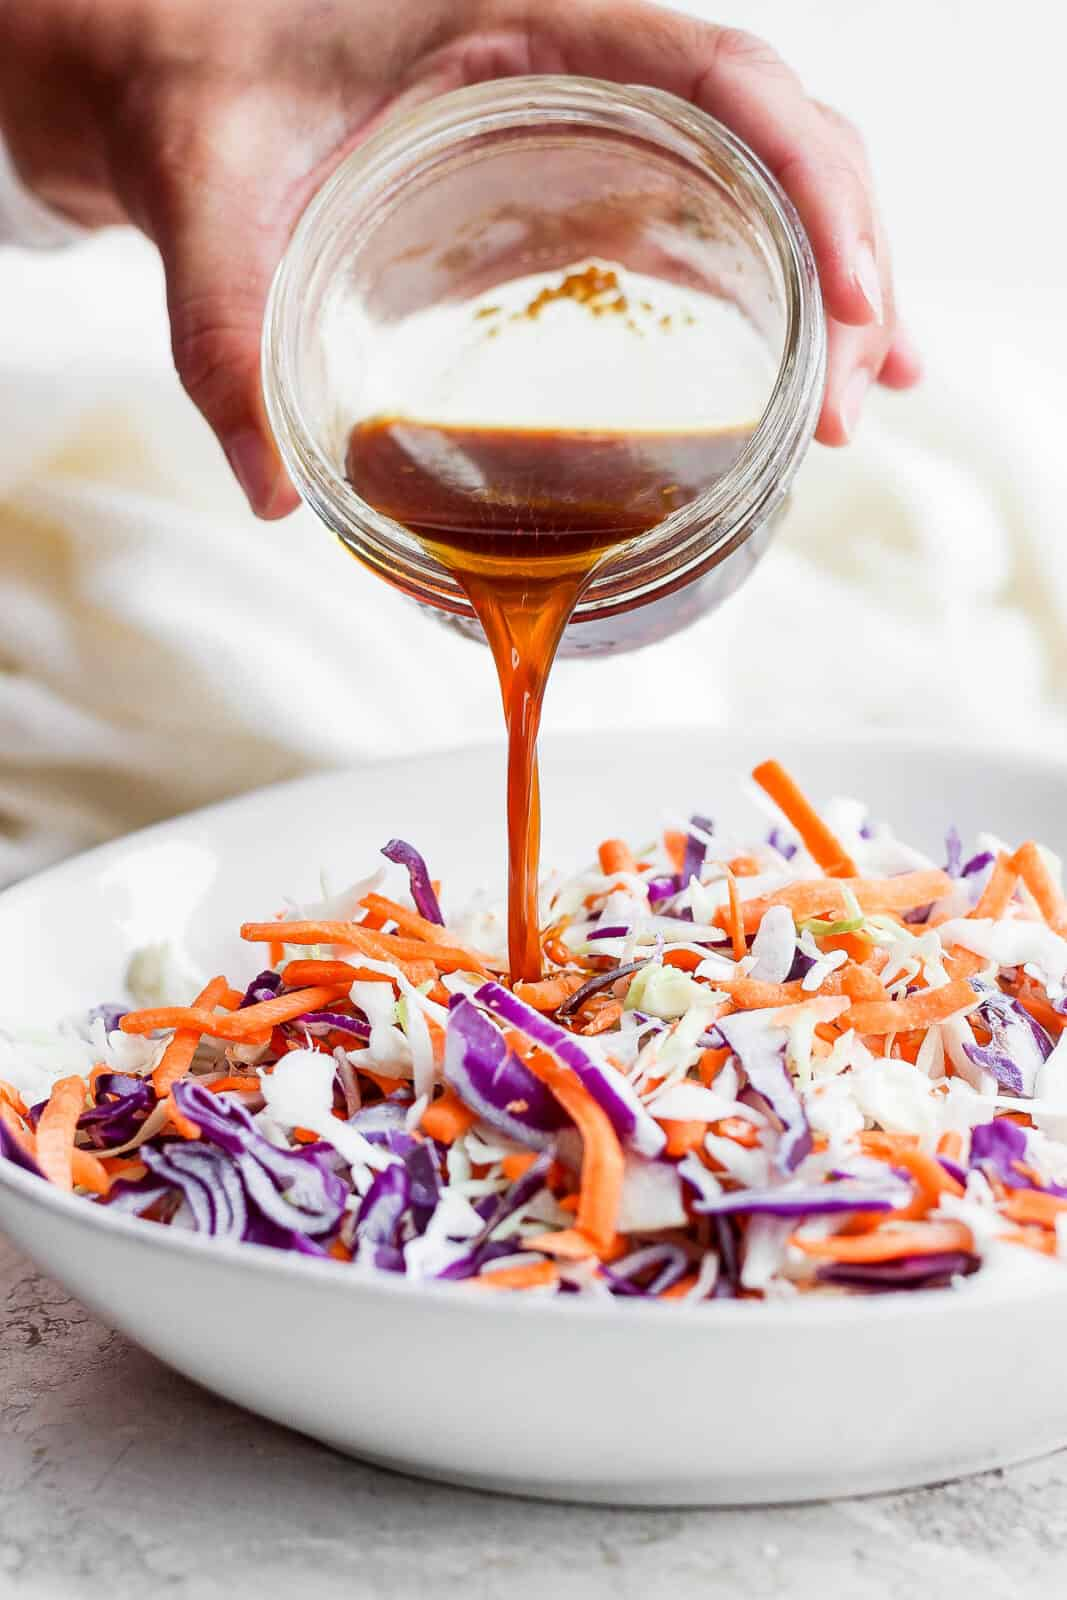 The sauce being poured from a mason jar onto the slaw ingredients.